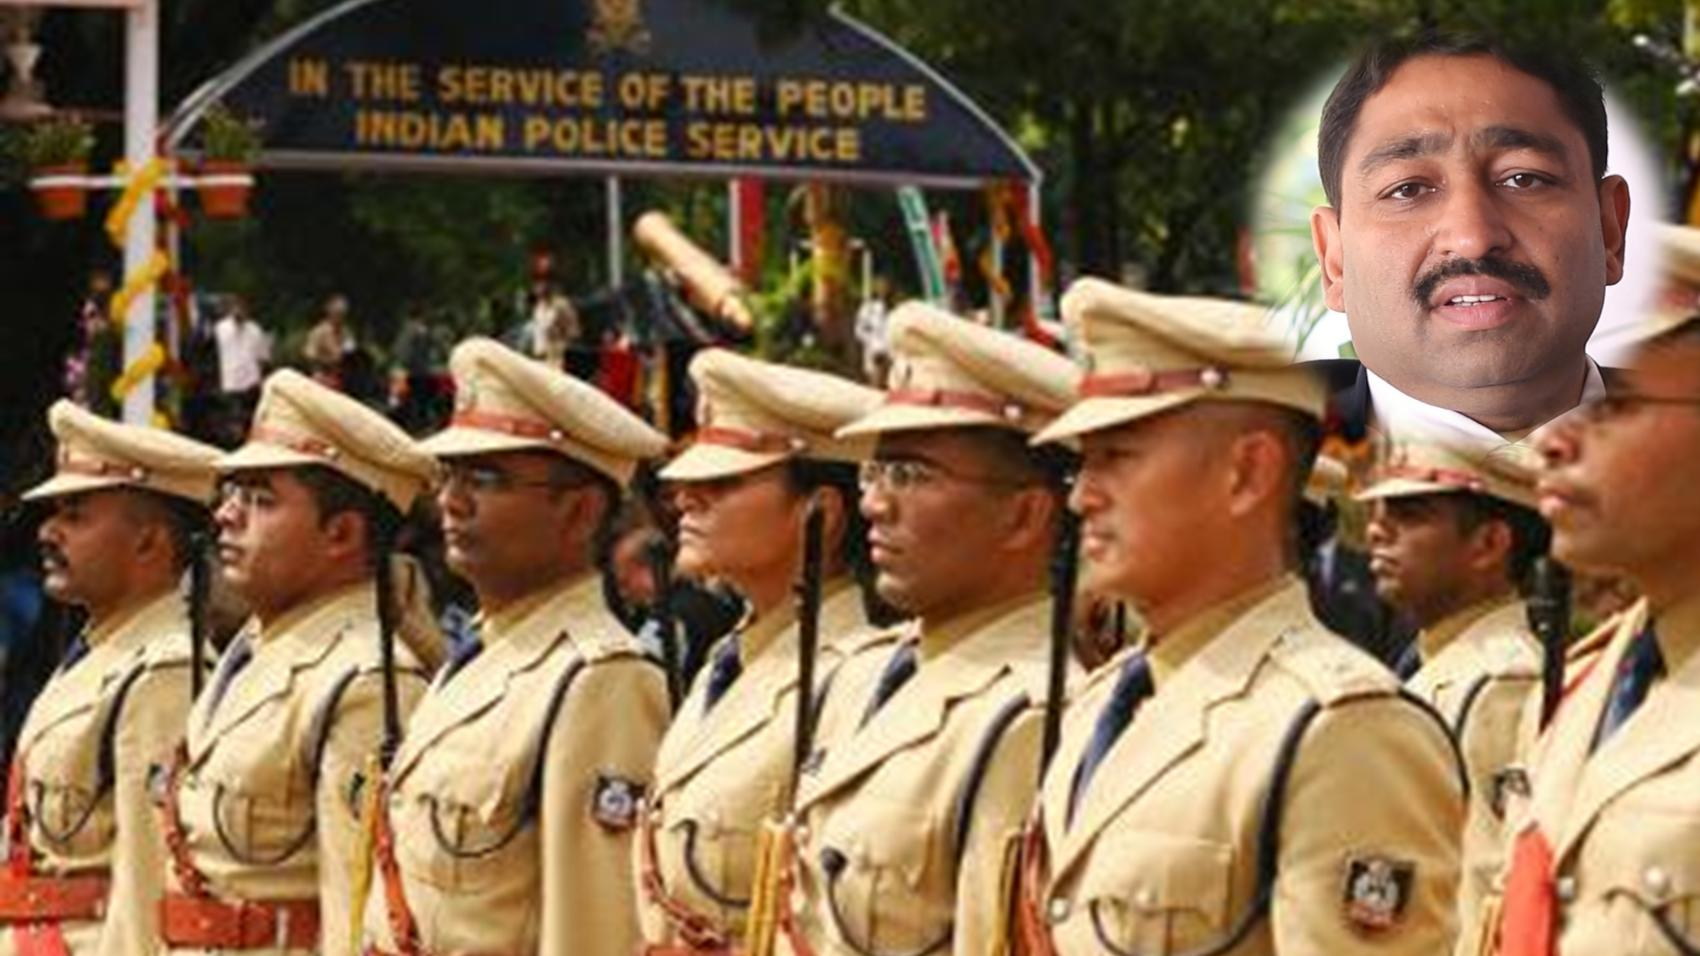 Career in Career-in-Indian-Police-Service/hindi